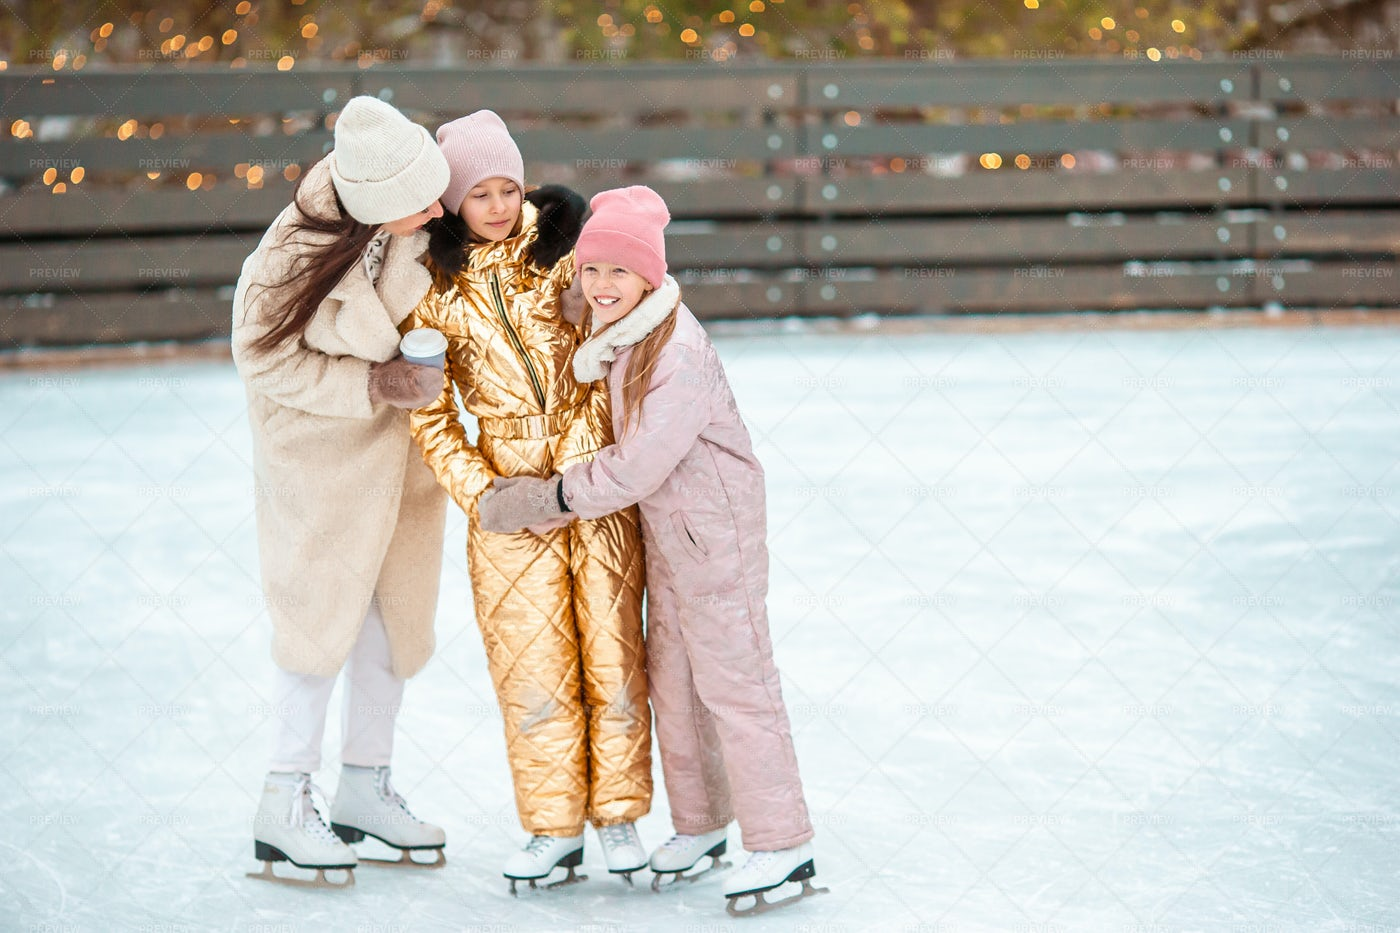 Family Ice Skating Together: Stock Photos